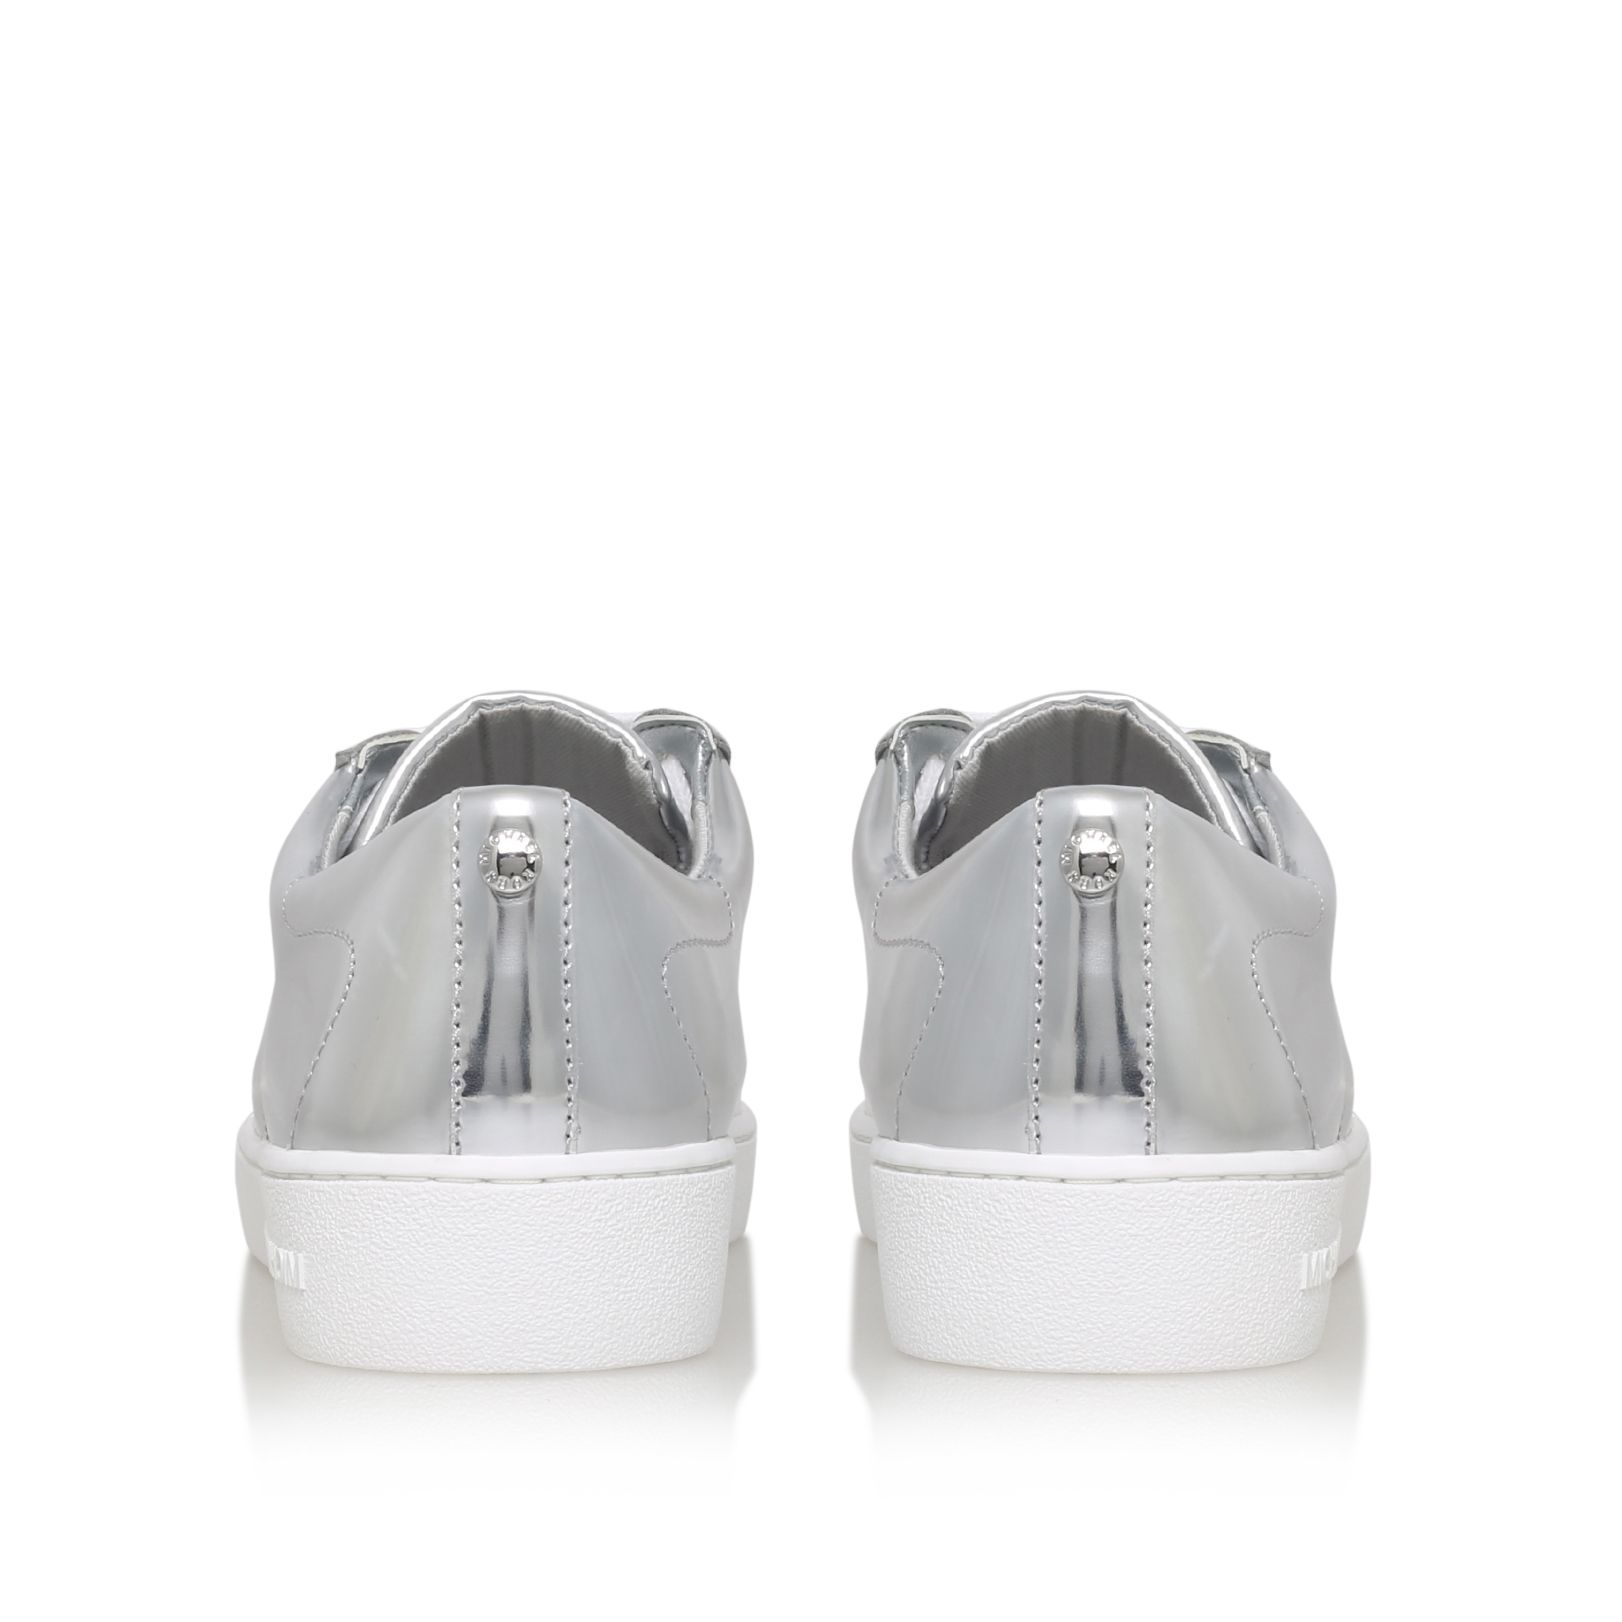 Michael Kors Synthetic Toby Lace Up Flat Sneakers in Silver (Metallic)